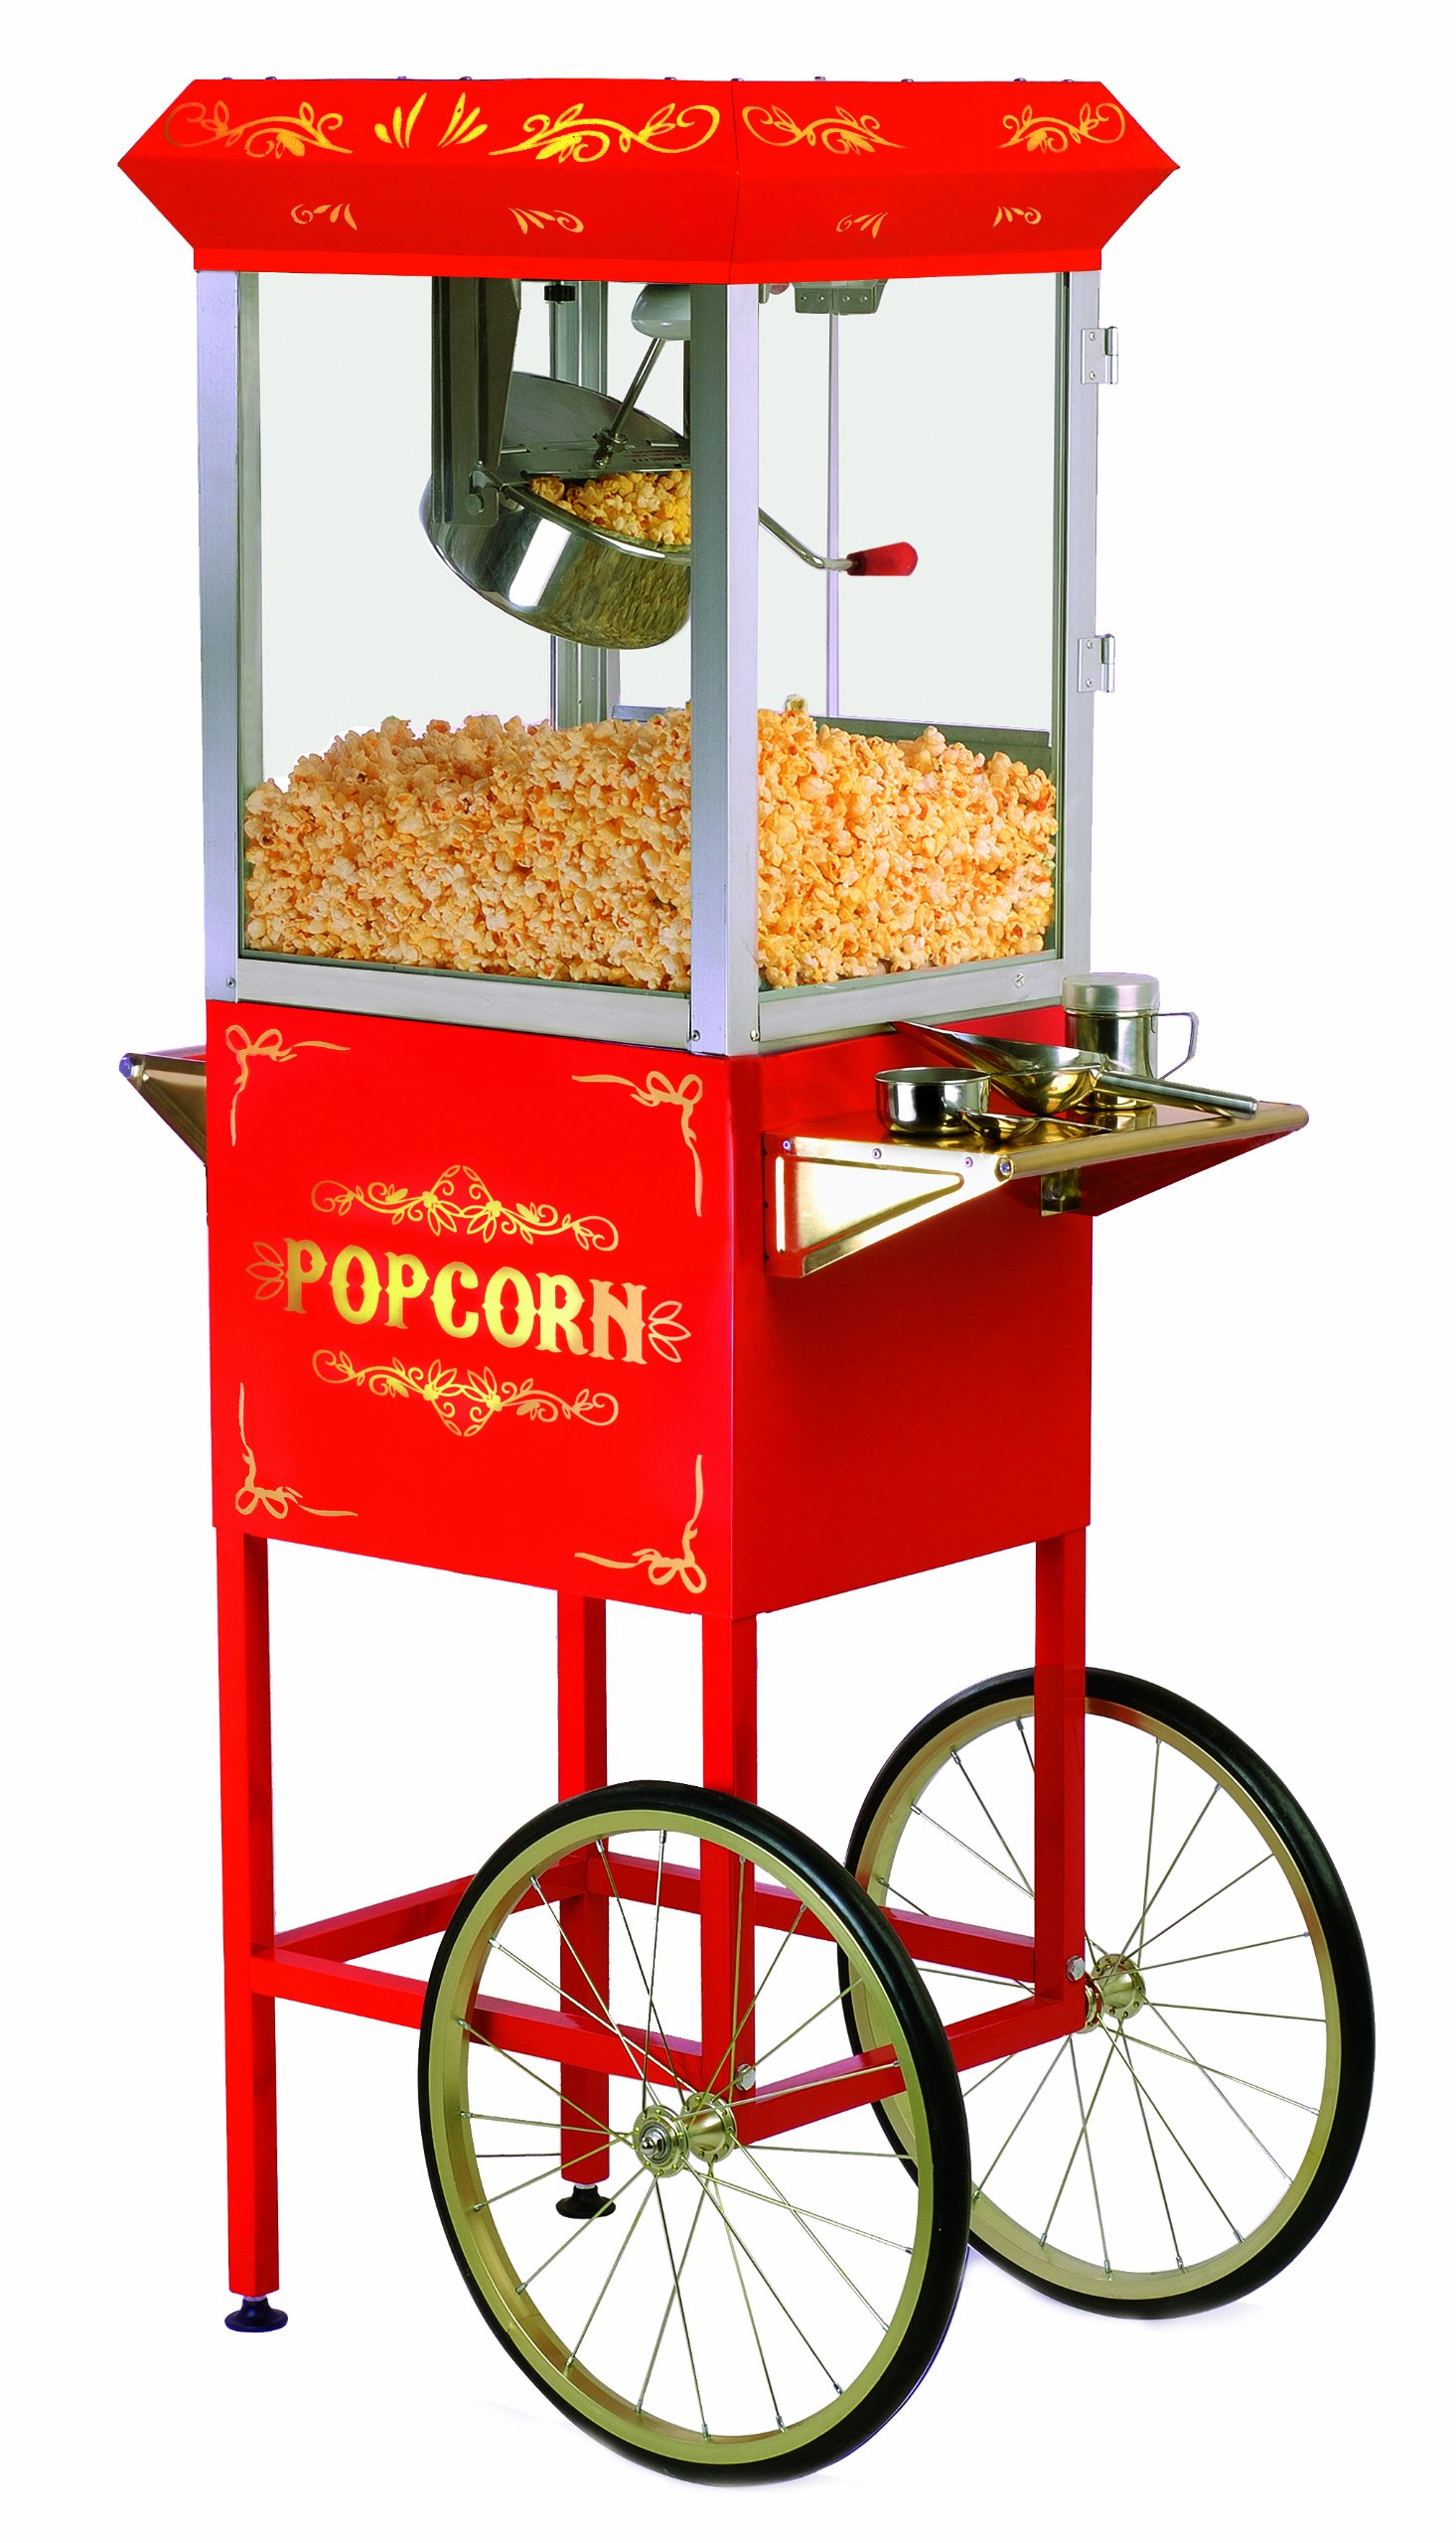 Elite Deluxe EPM-400 Maxi-Matic 8 Ounce Old-Fashioned Popcorn Popper Machine with Trolley, Red